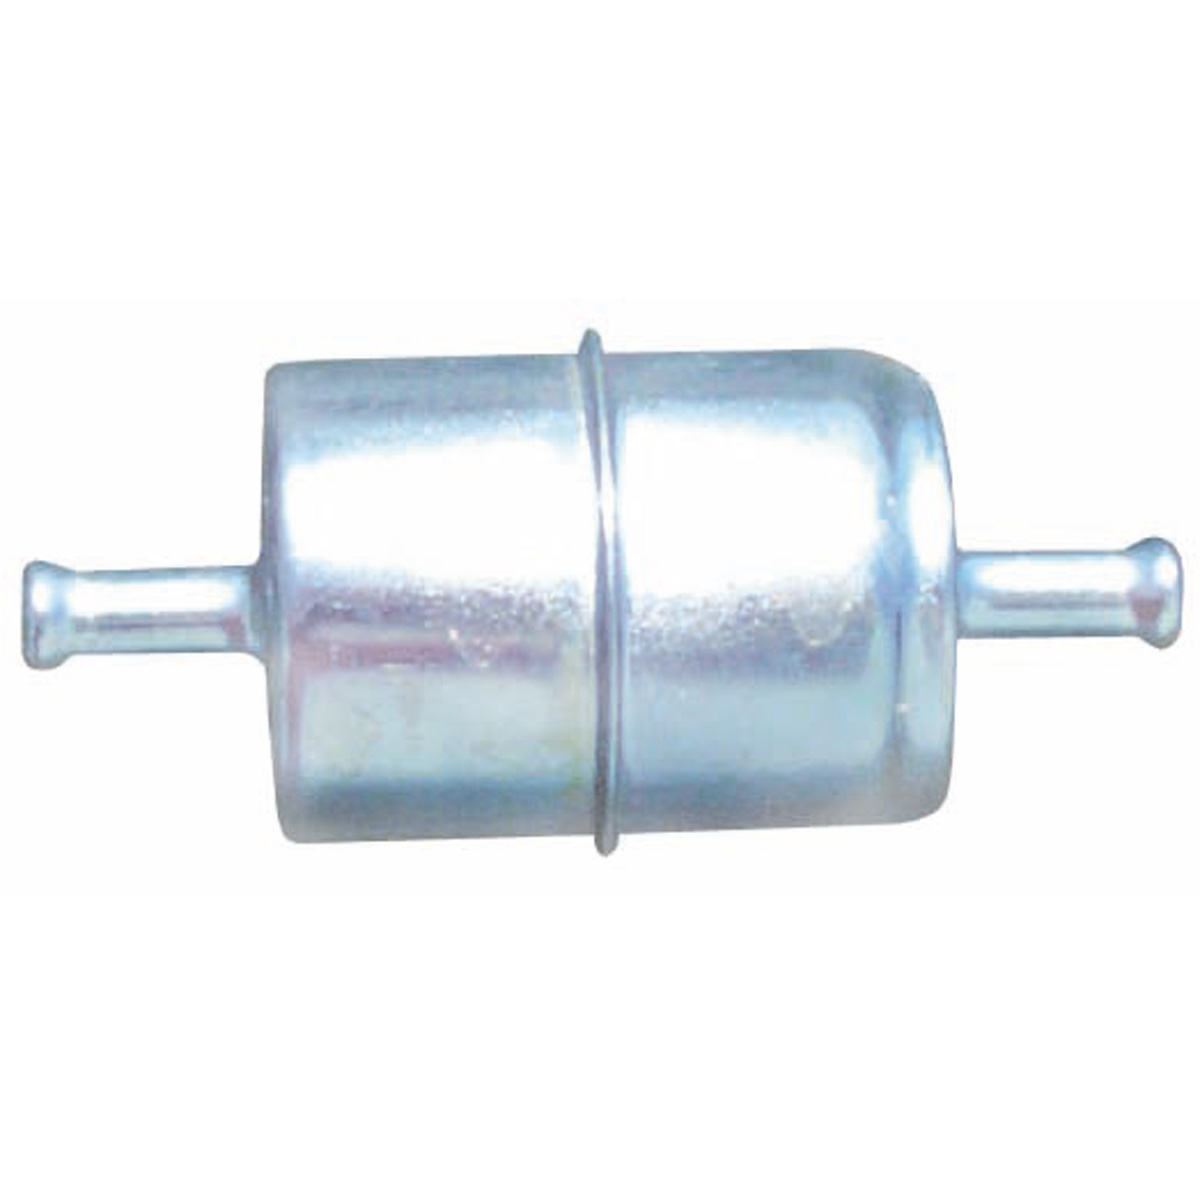 5 16 Metal Fuel Filter Kimball Midwest